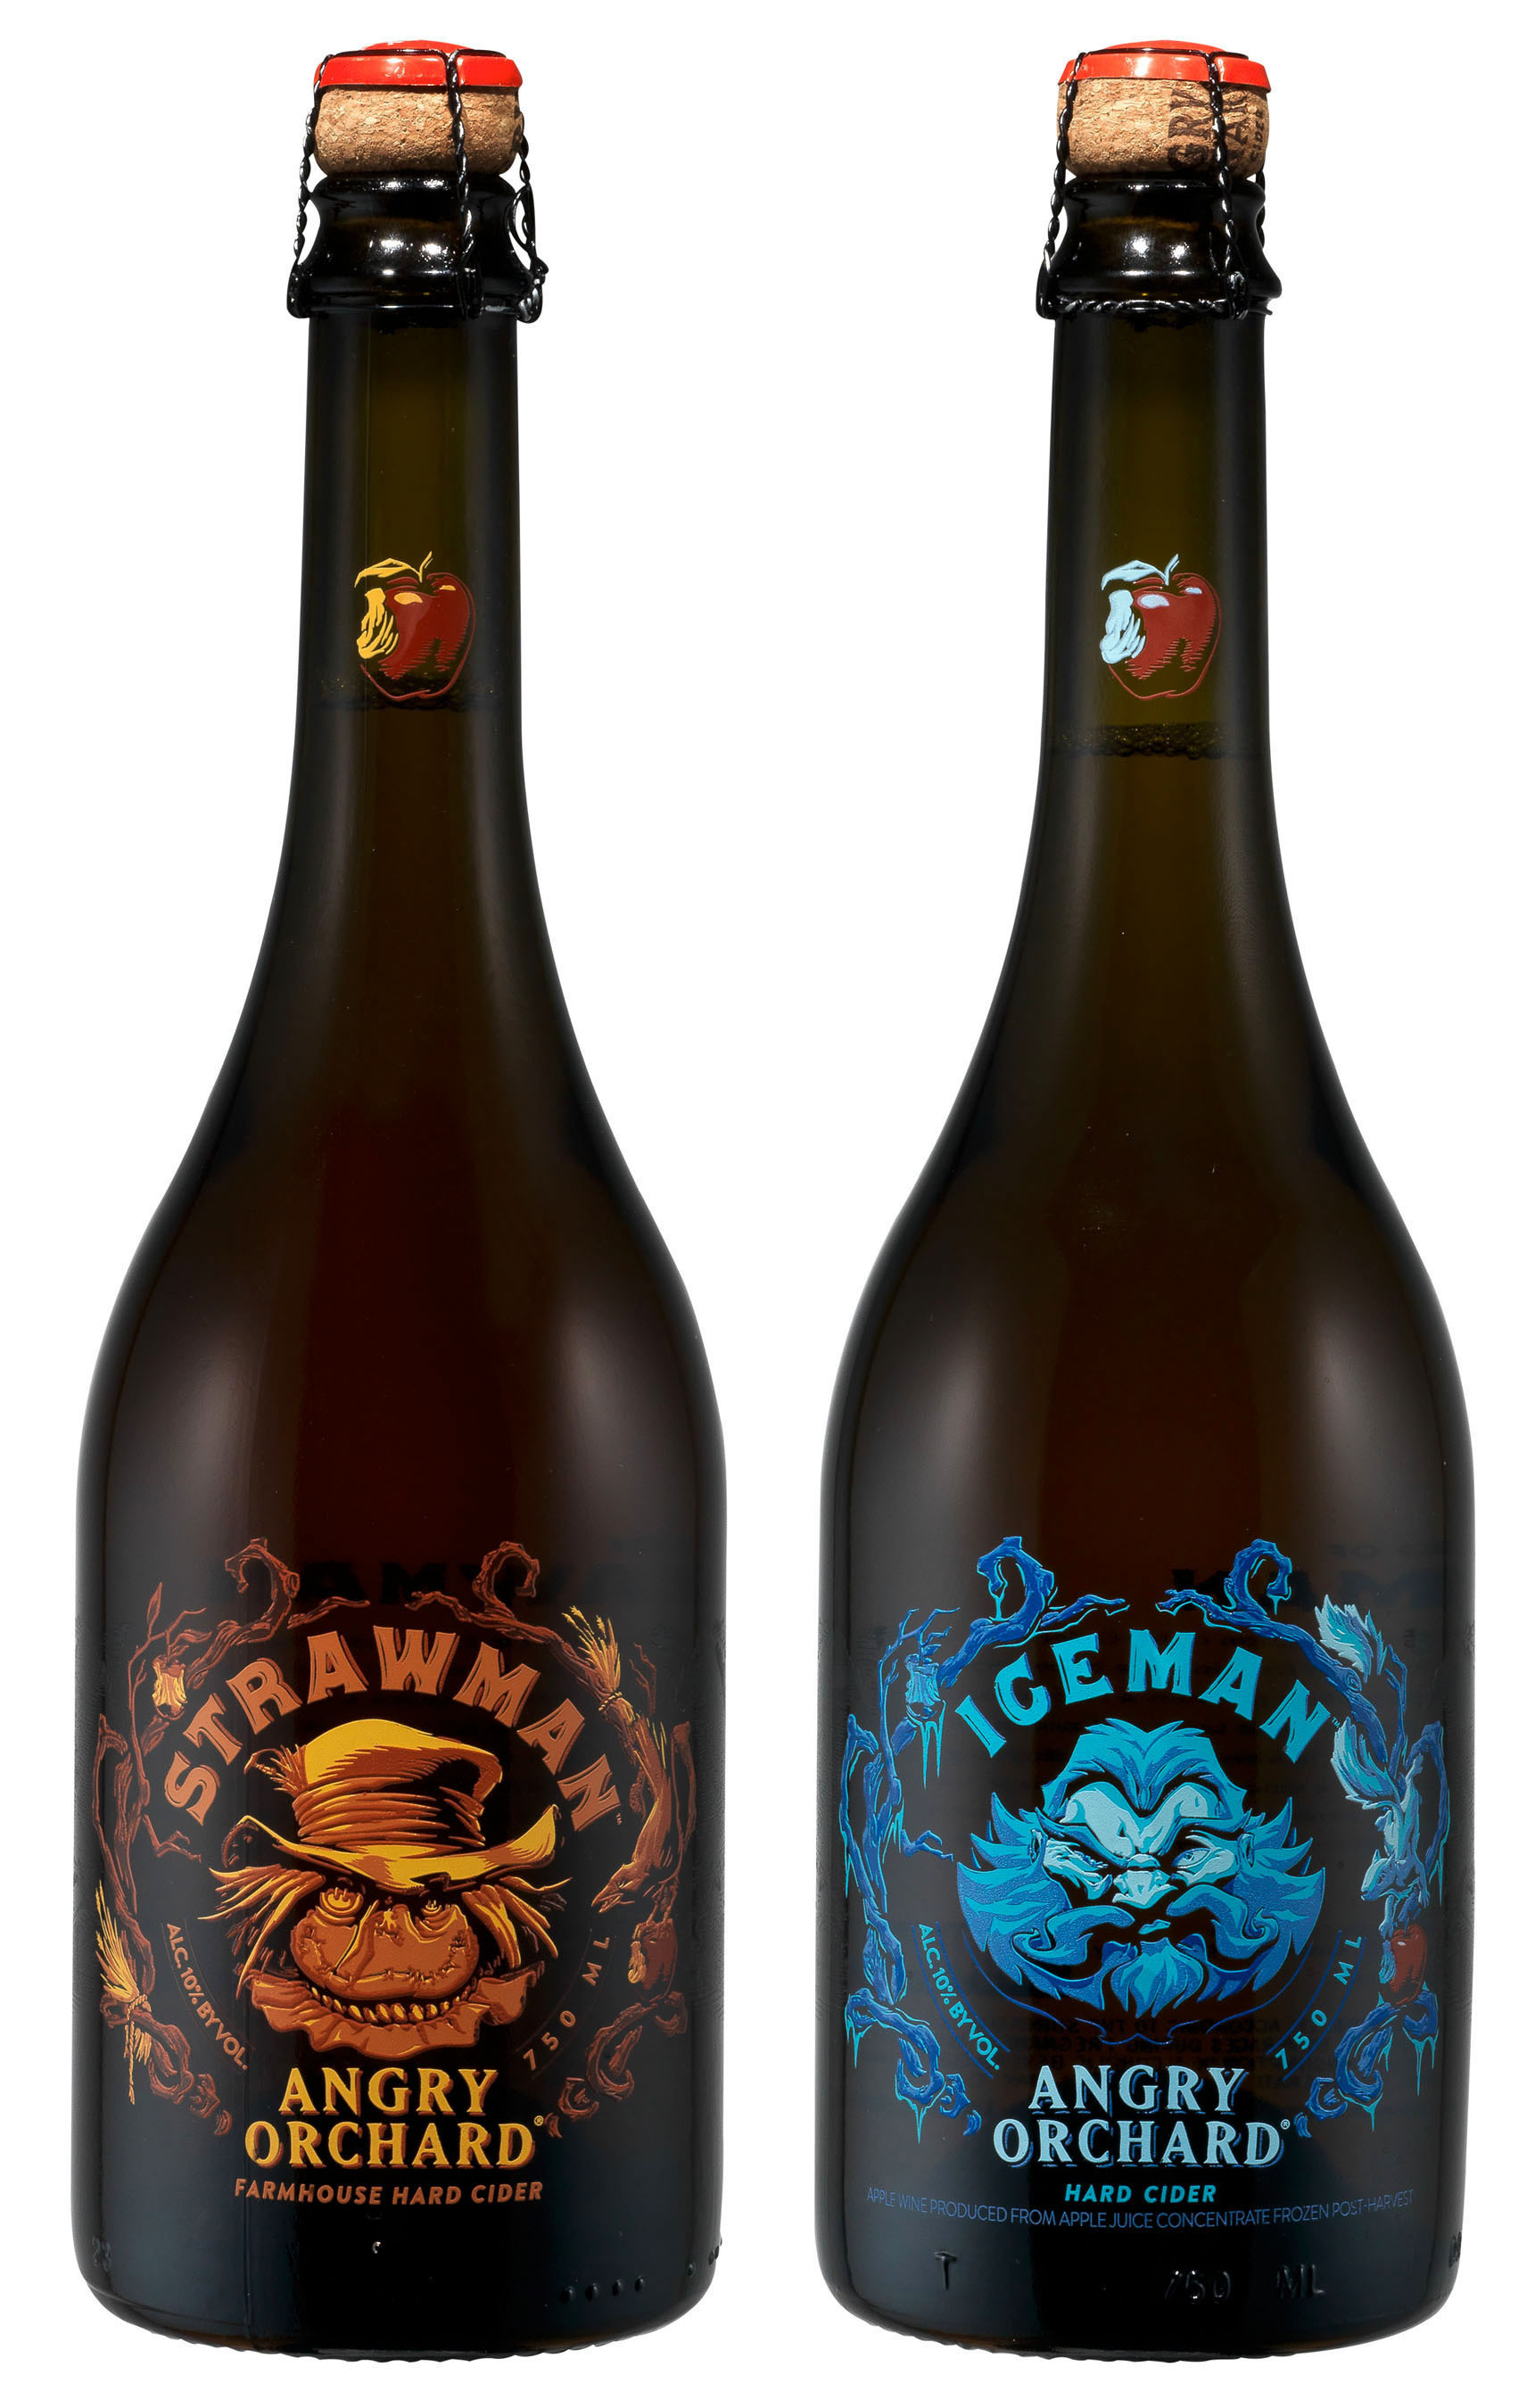 About Angry Orc... Angry Orchard Cider